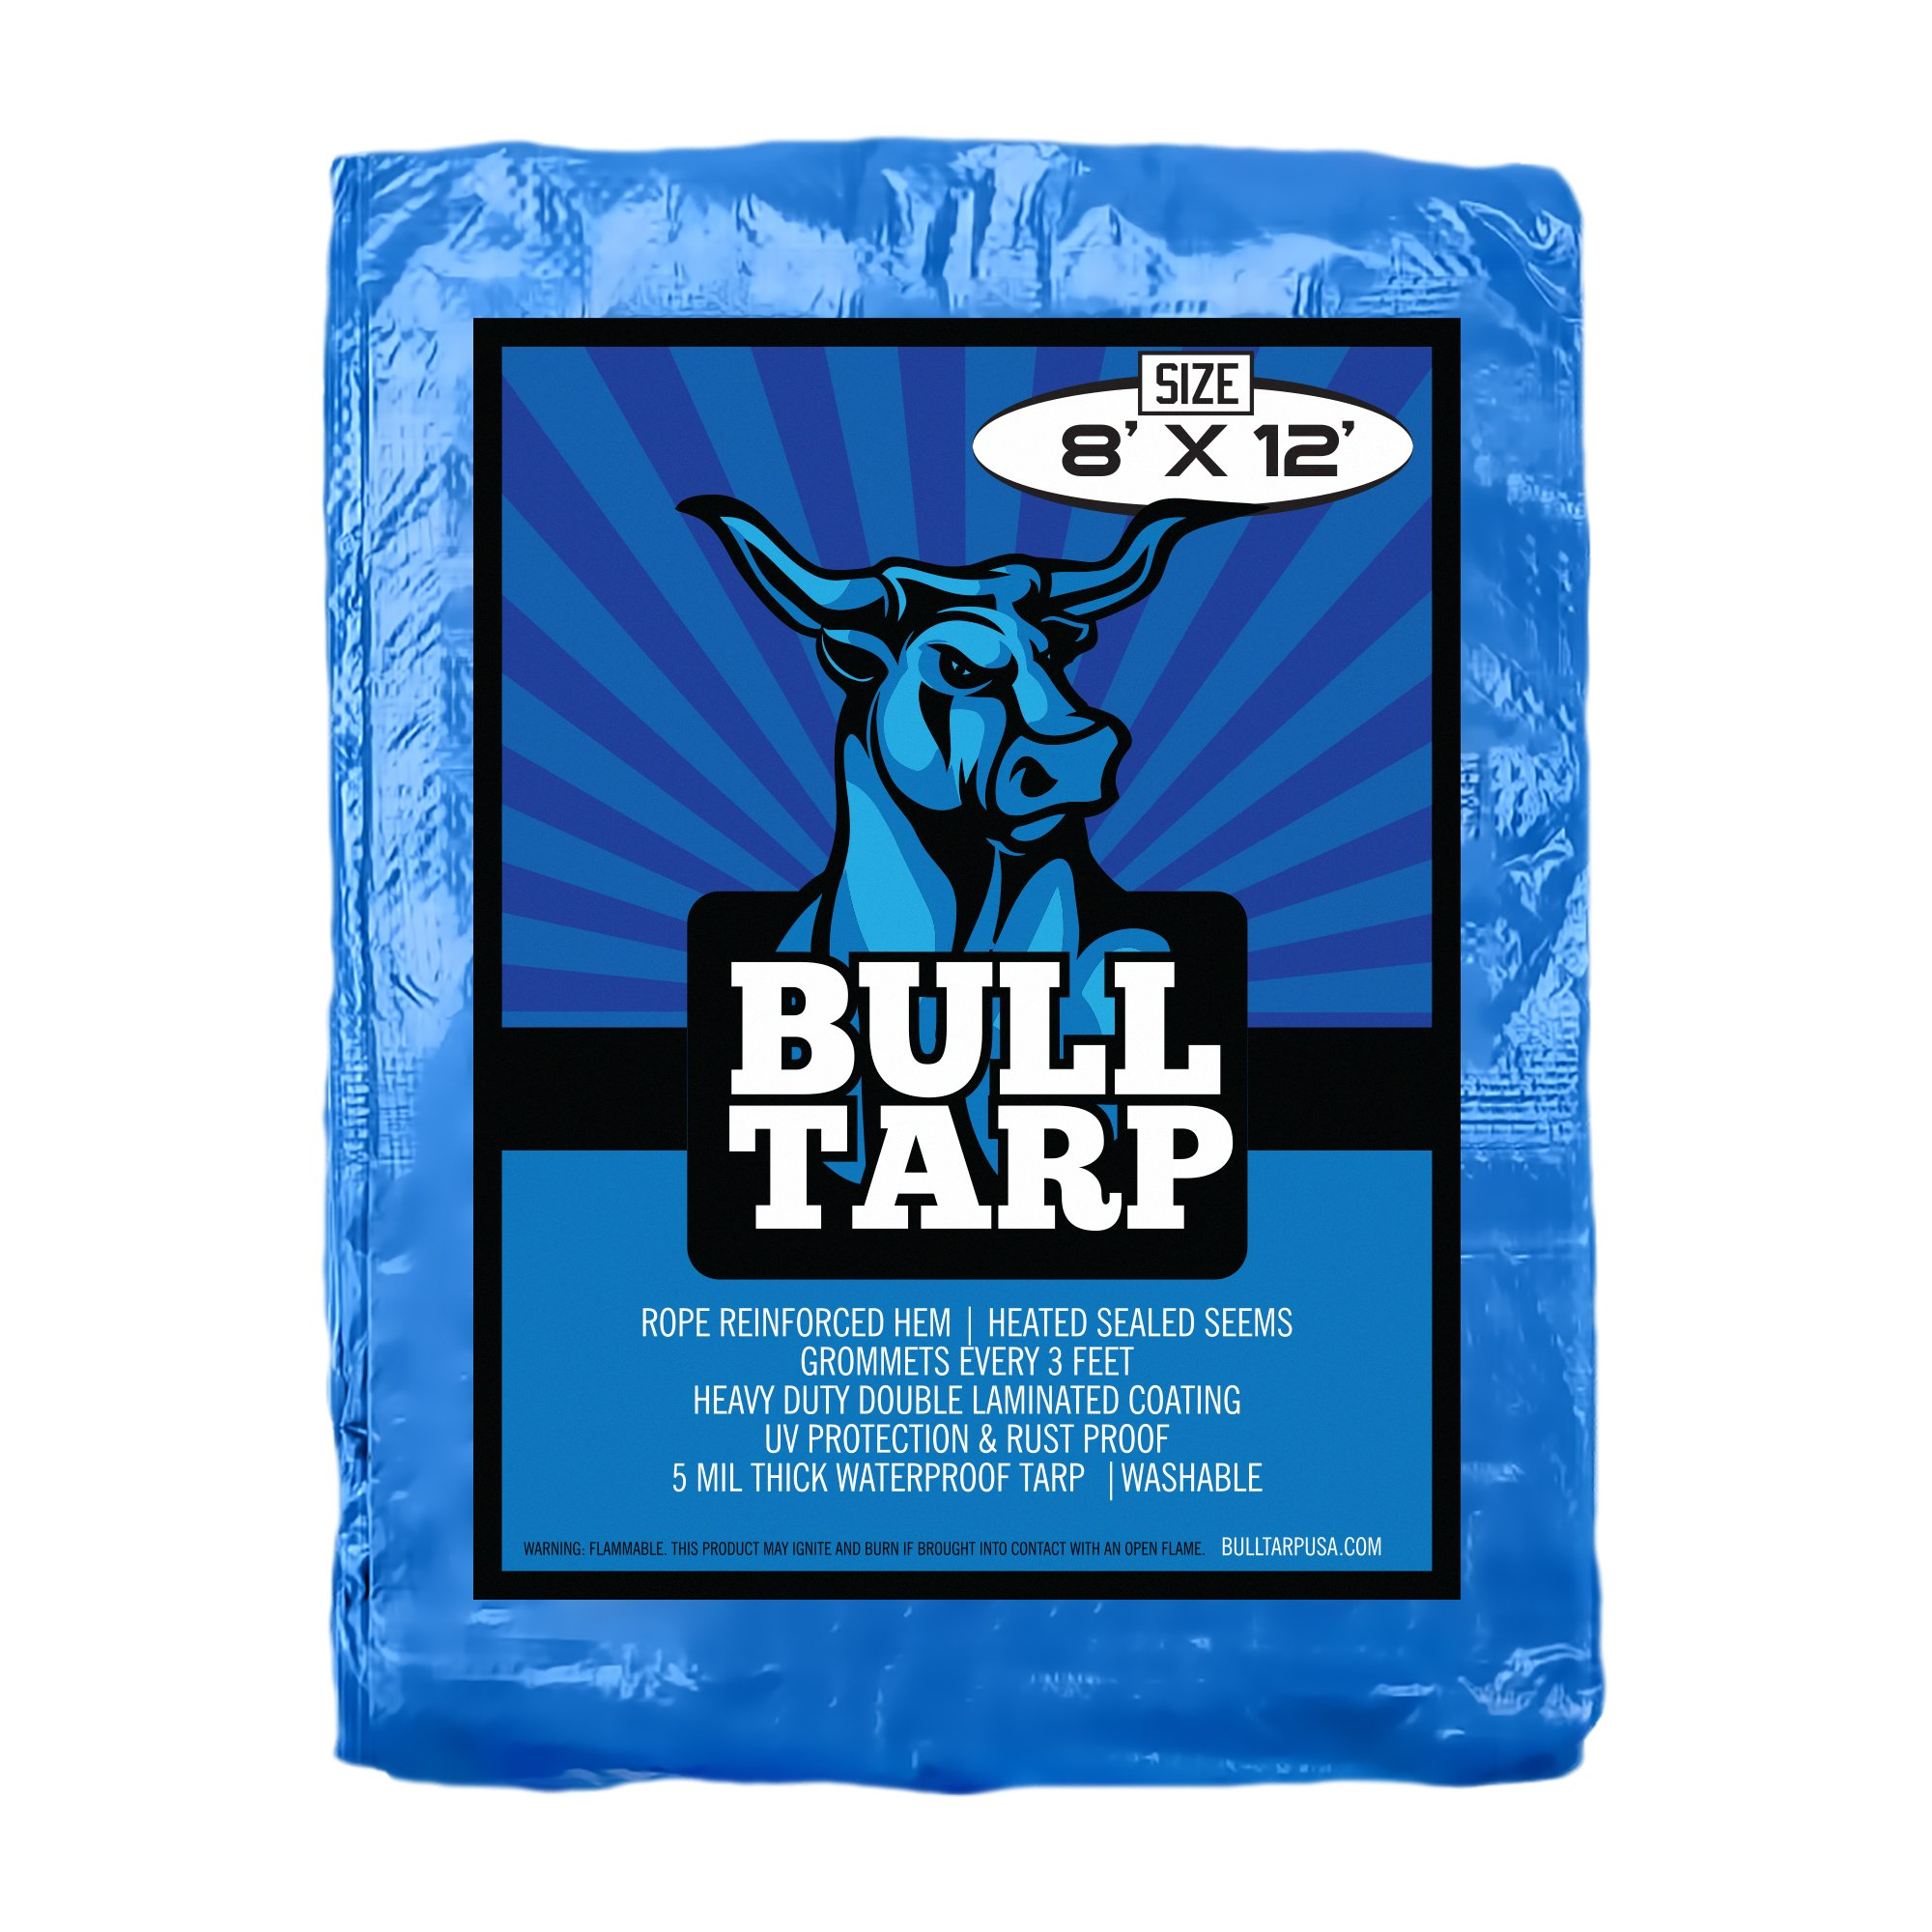 Blue Poly Tarp Cover 5 Mil Thick, Multi Purpose Waterproof Tarpaulin, UV Resistant, Reinforced Rip-Stop with Grommets Every 3 Feet. (8X12)